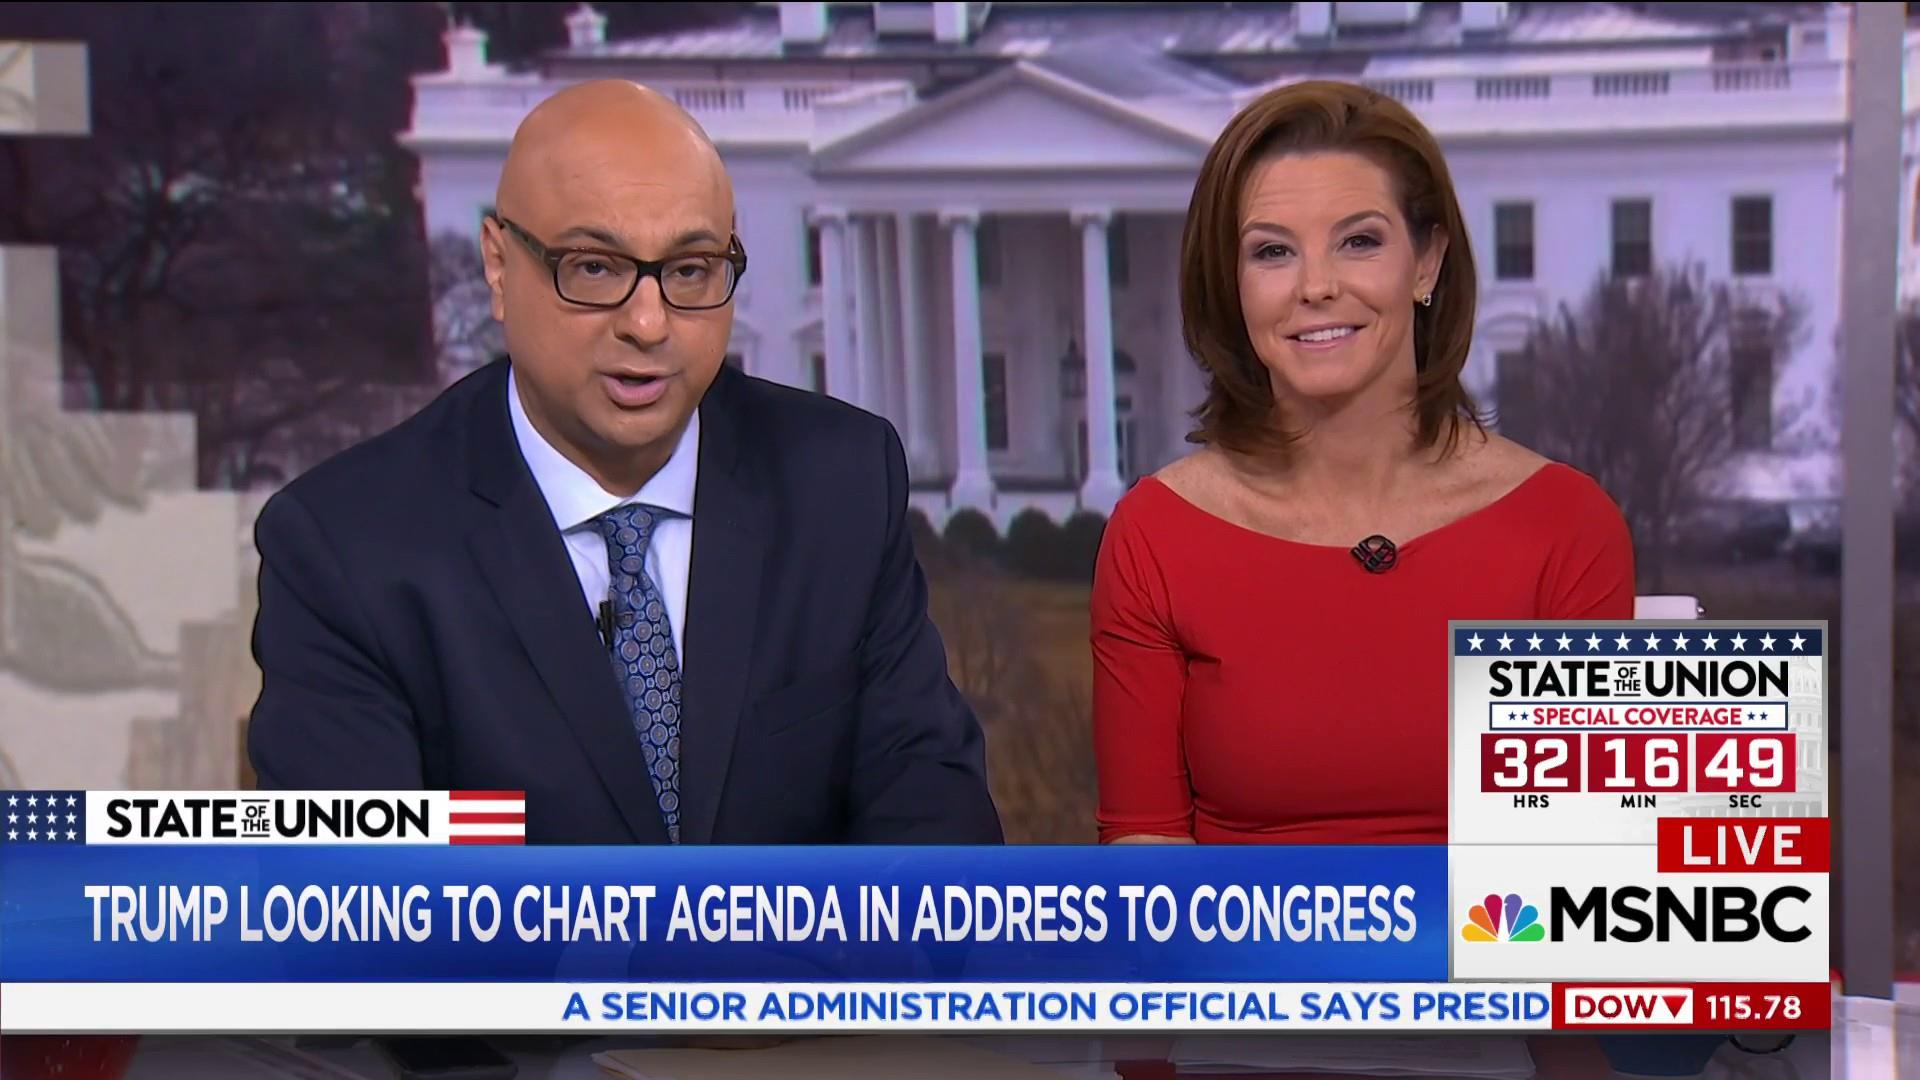 Hewitt on SOTU Preview: I'm looking for him to frame DACA deal